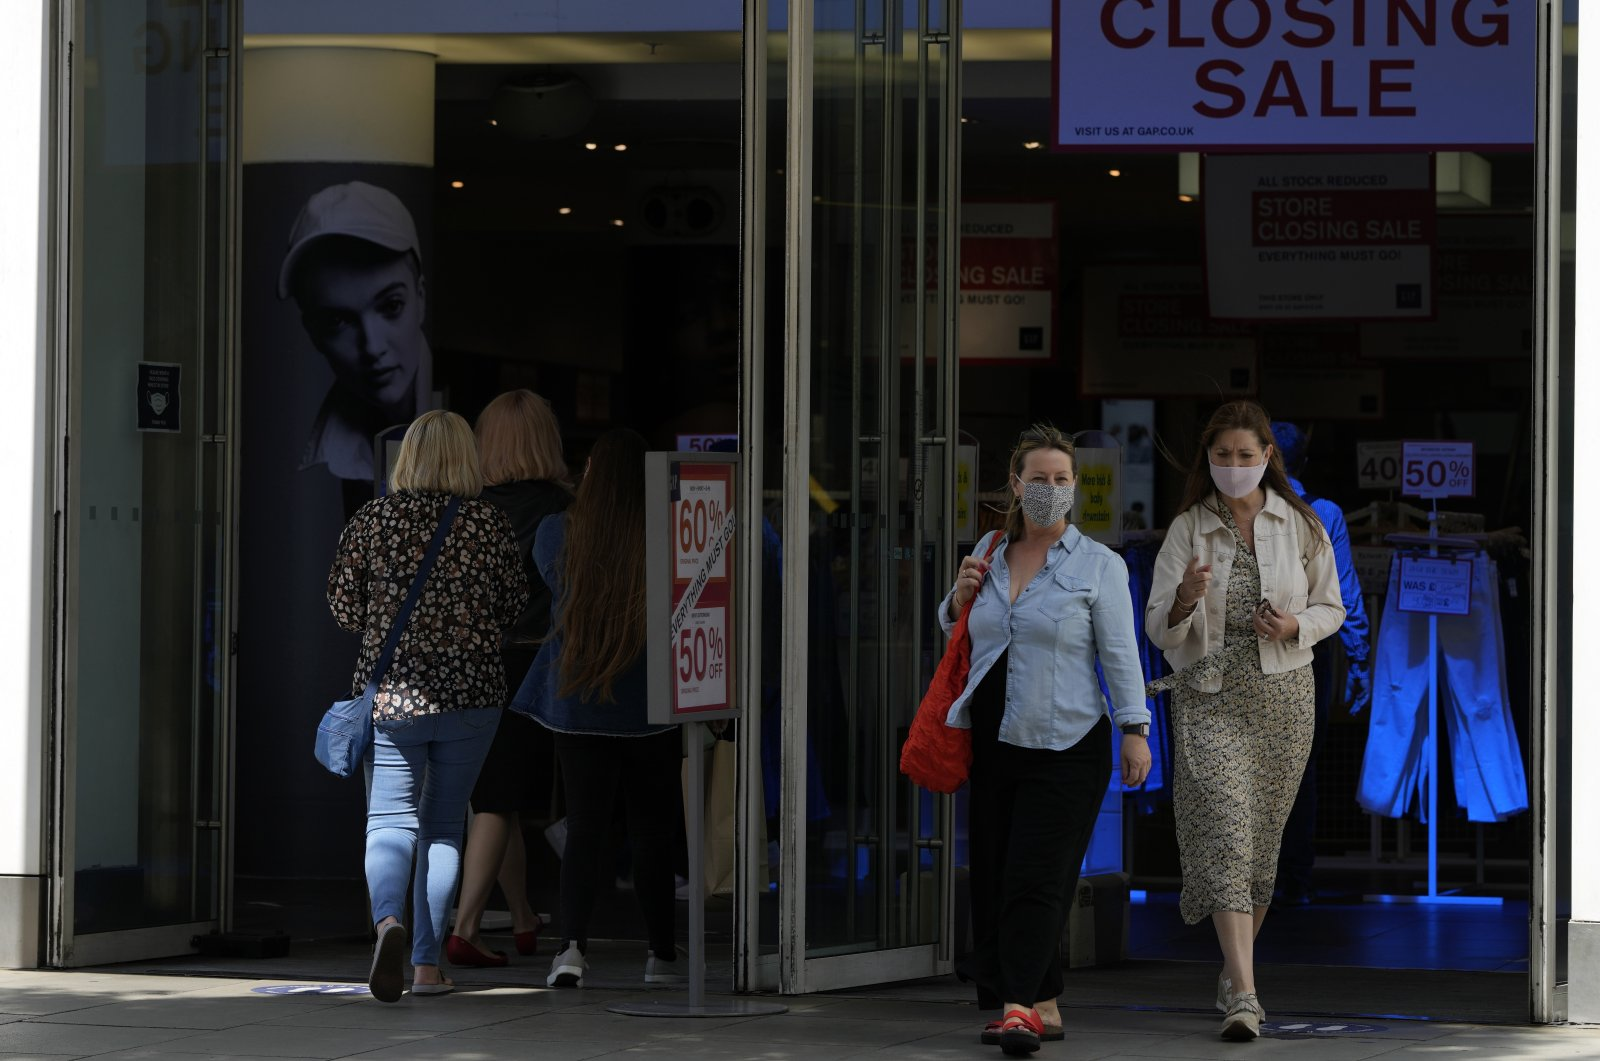 Two women walk from a shop while wearing face masks against the coronavirus in London, U.K., Friday, Aug. 6, 2021. (AP Photo)